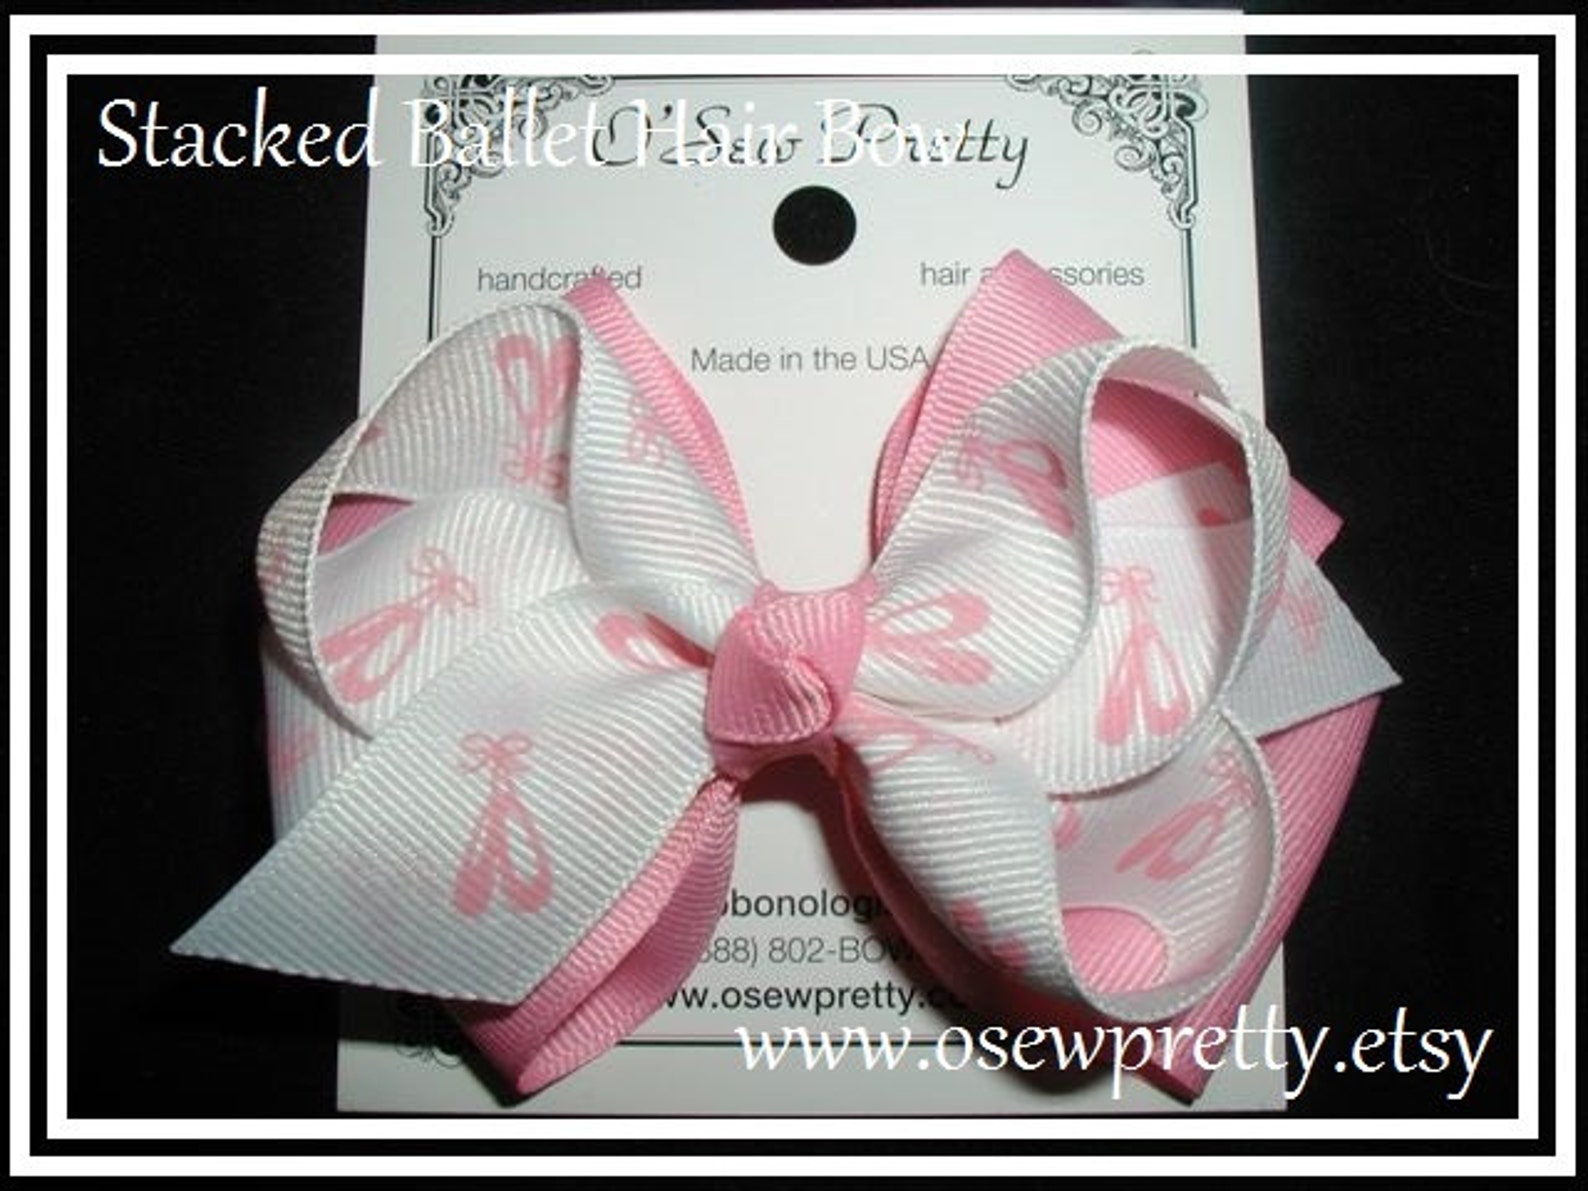 ballet hair bow, dance hair bows, stacked ballerina hair bows, pink ballet hair bows, ballerina hair bows, ballet toe shoe, pink